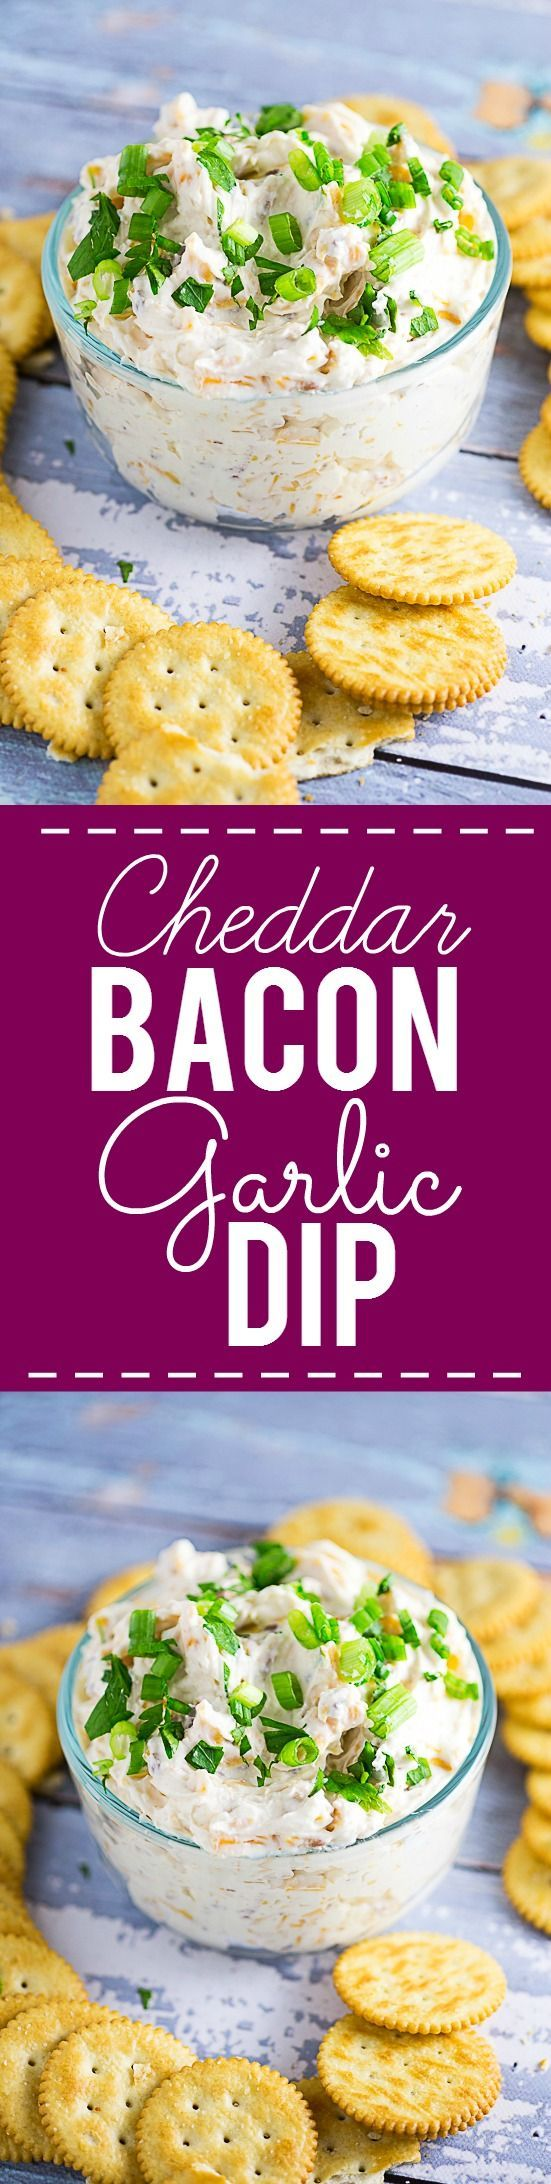 Cheddar Bacon Garlic Dip Recipe - Three favorite flavors come together in this simple but amazing Cheddar Bacon Garlic Dip recipe, with cheddar cheese, bacon, and garlic, in a creamy cream cheese dip.